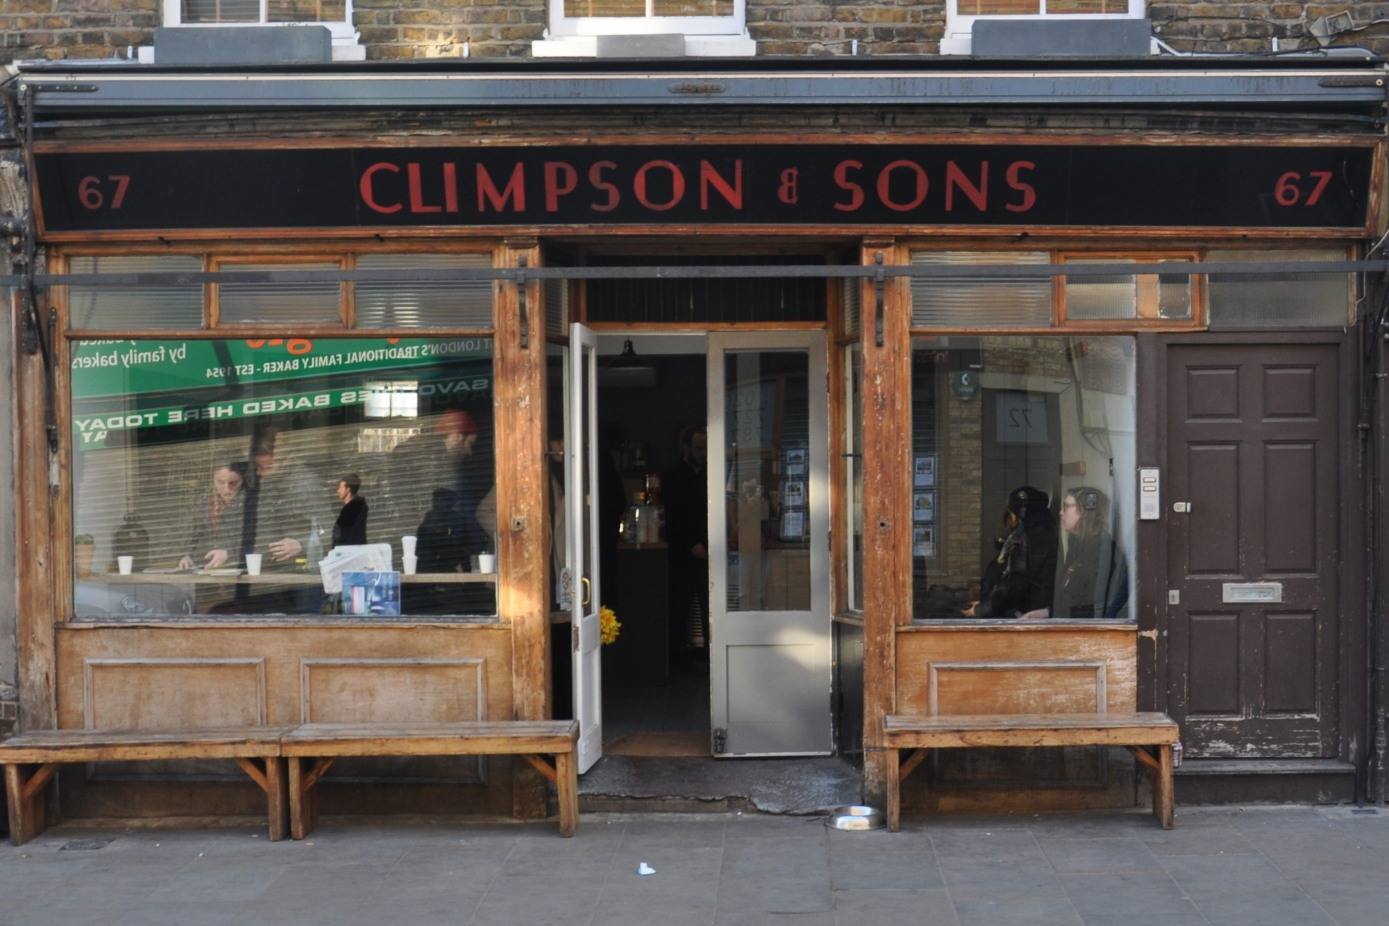 The front of the Climpson and Sons Café, with the recessed door offset to the right and with wooden benches on the pavement in front of the windows.